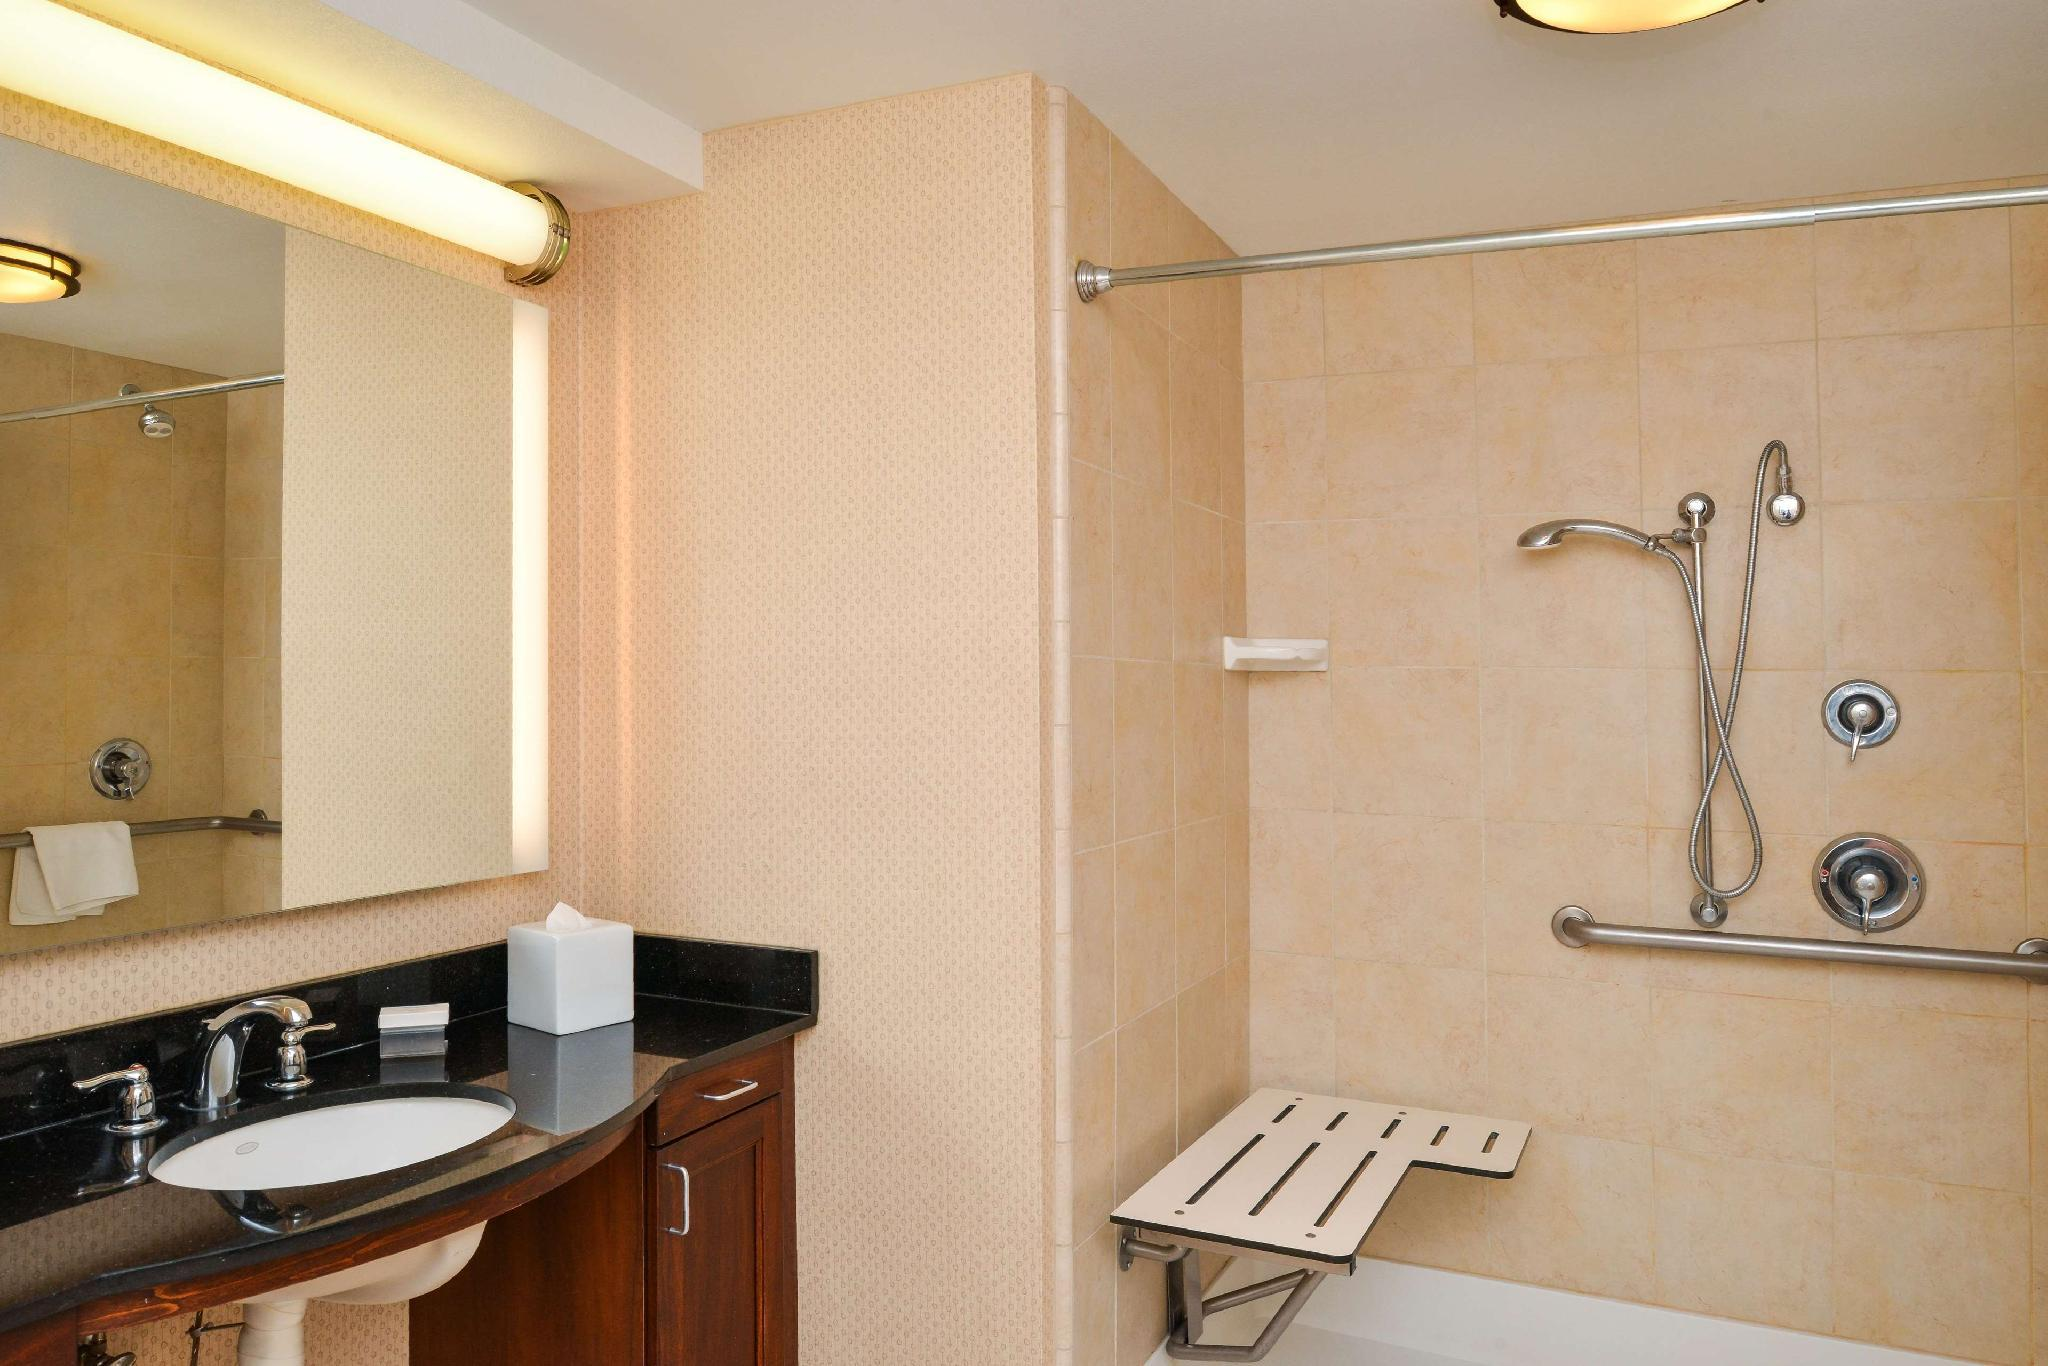 1 King Mobility Hearing Accessible Roll in Shower Studio